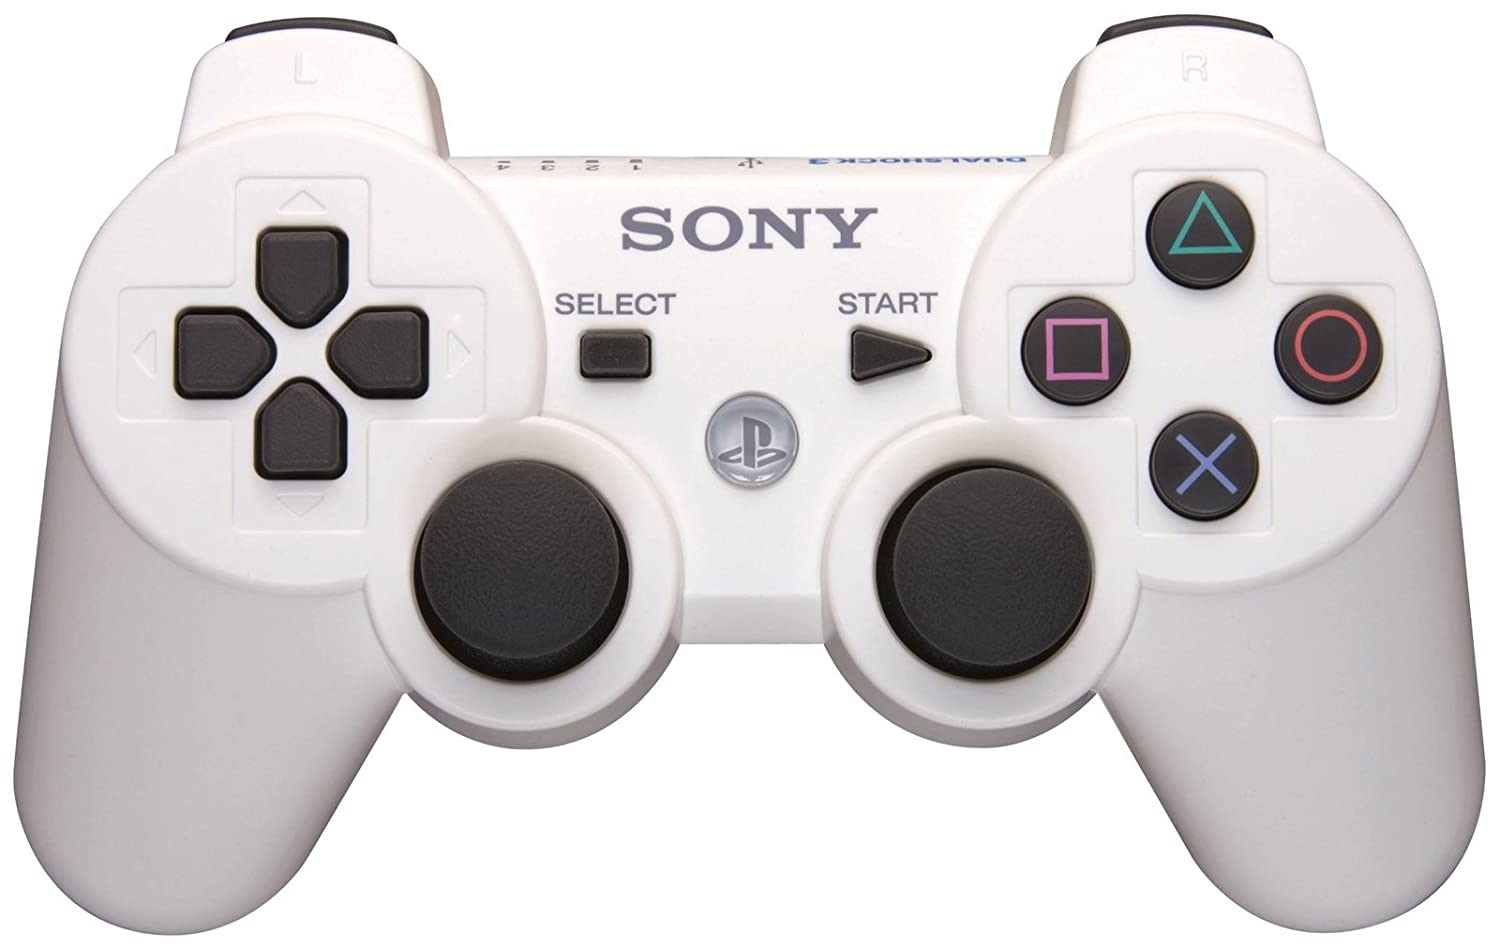 Sony DualShock 3 - Mando para Play Station 3, color blanco: Amazon.es: Videojuegos